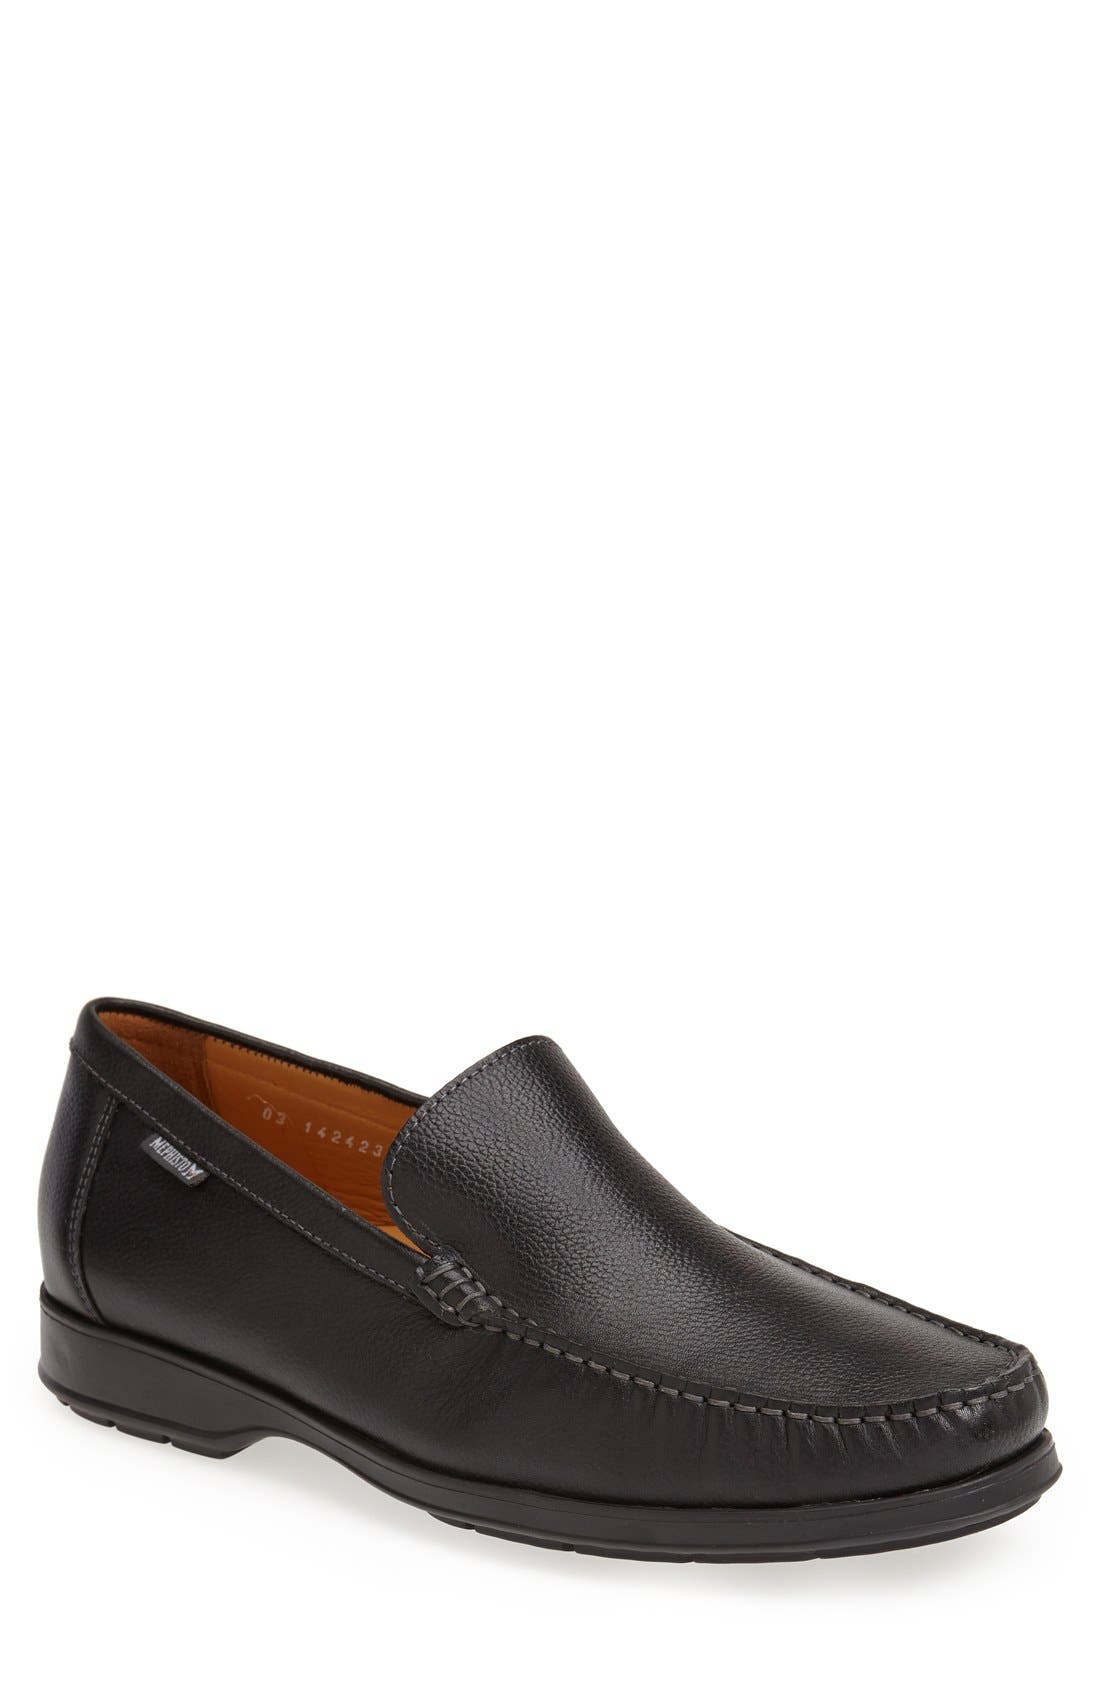 Alternate Image 1 Selected - Mephisto 'Henri' Loafer (Men)